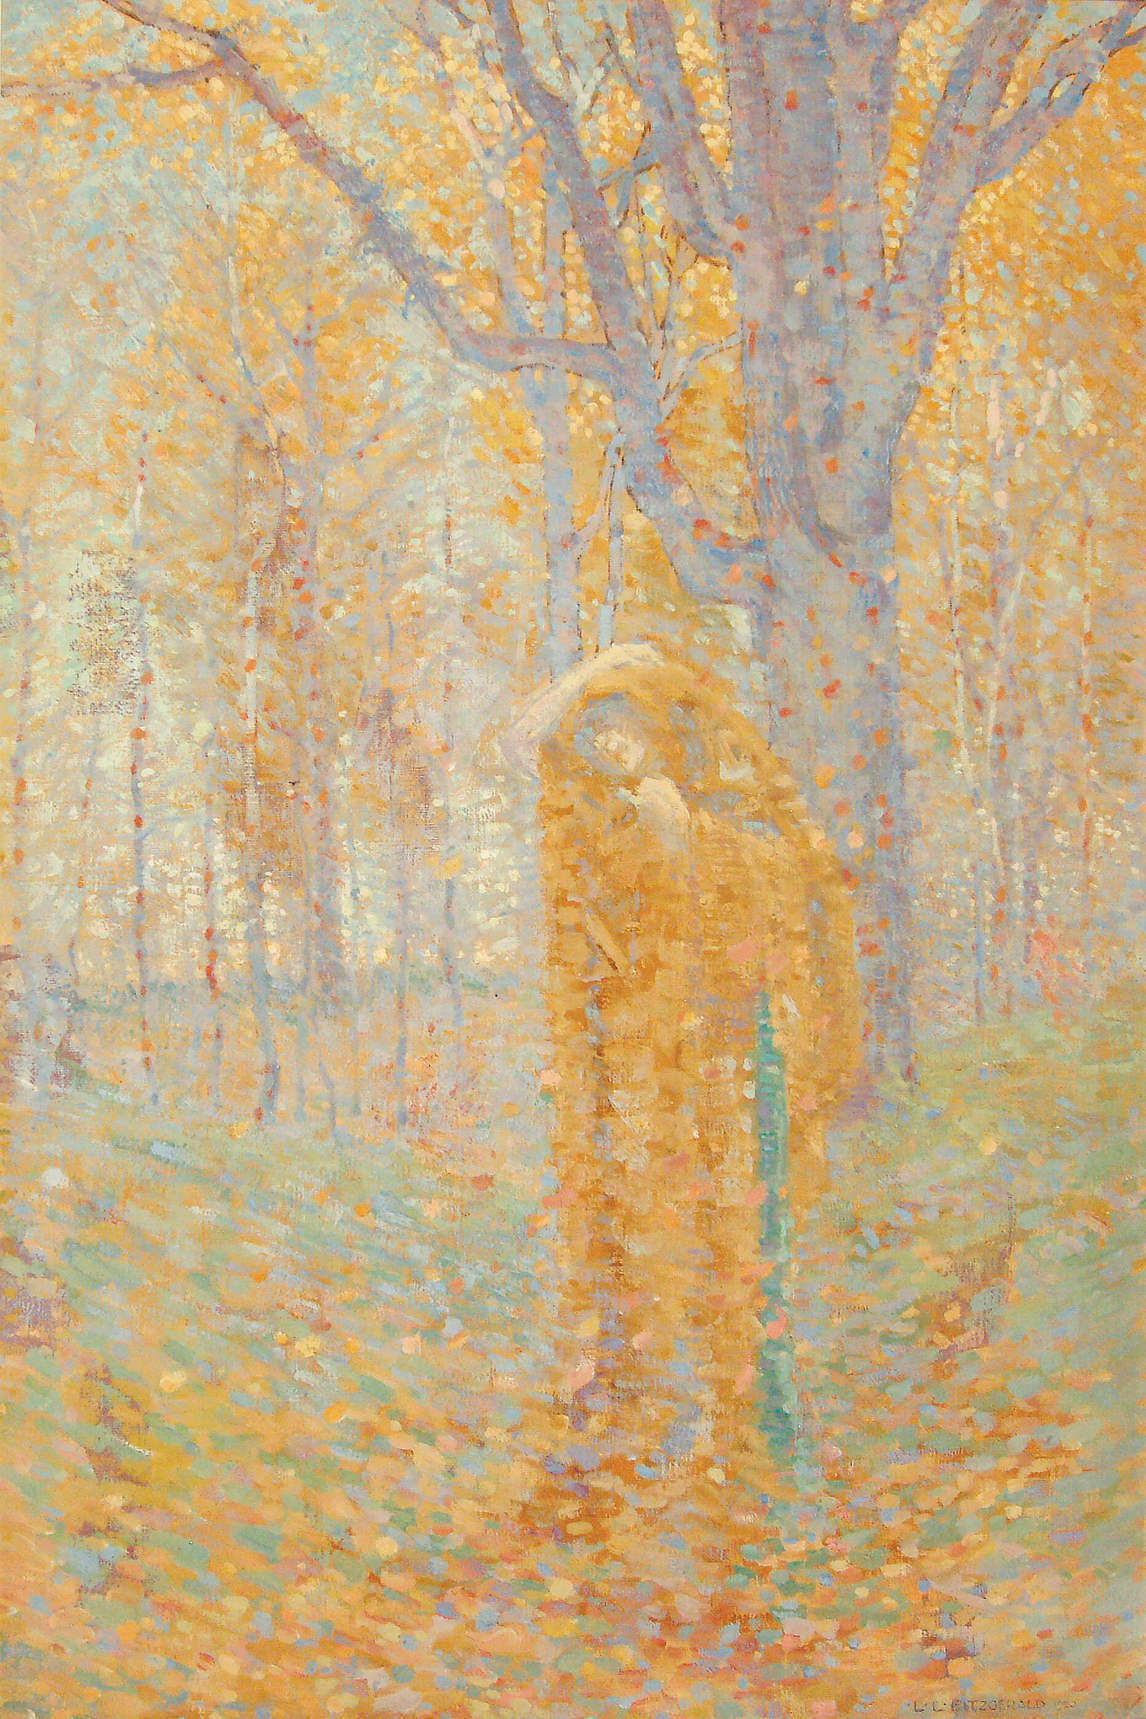 Art Canada Institute, Lionel LeMoine Fitzgerald, Figure in the Woods, 1920